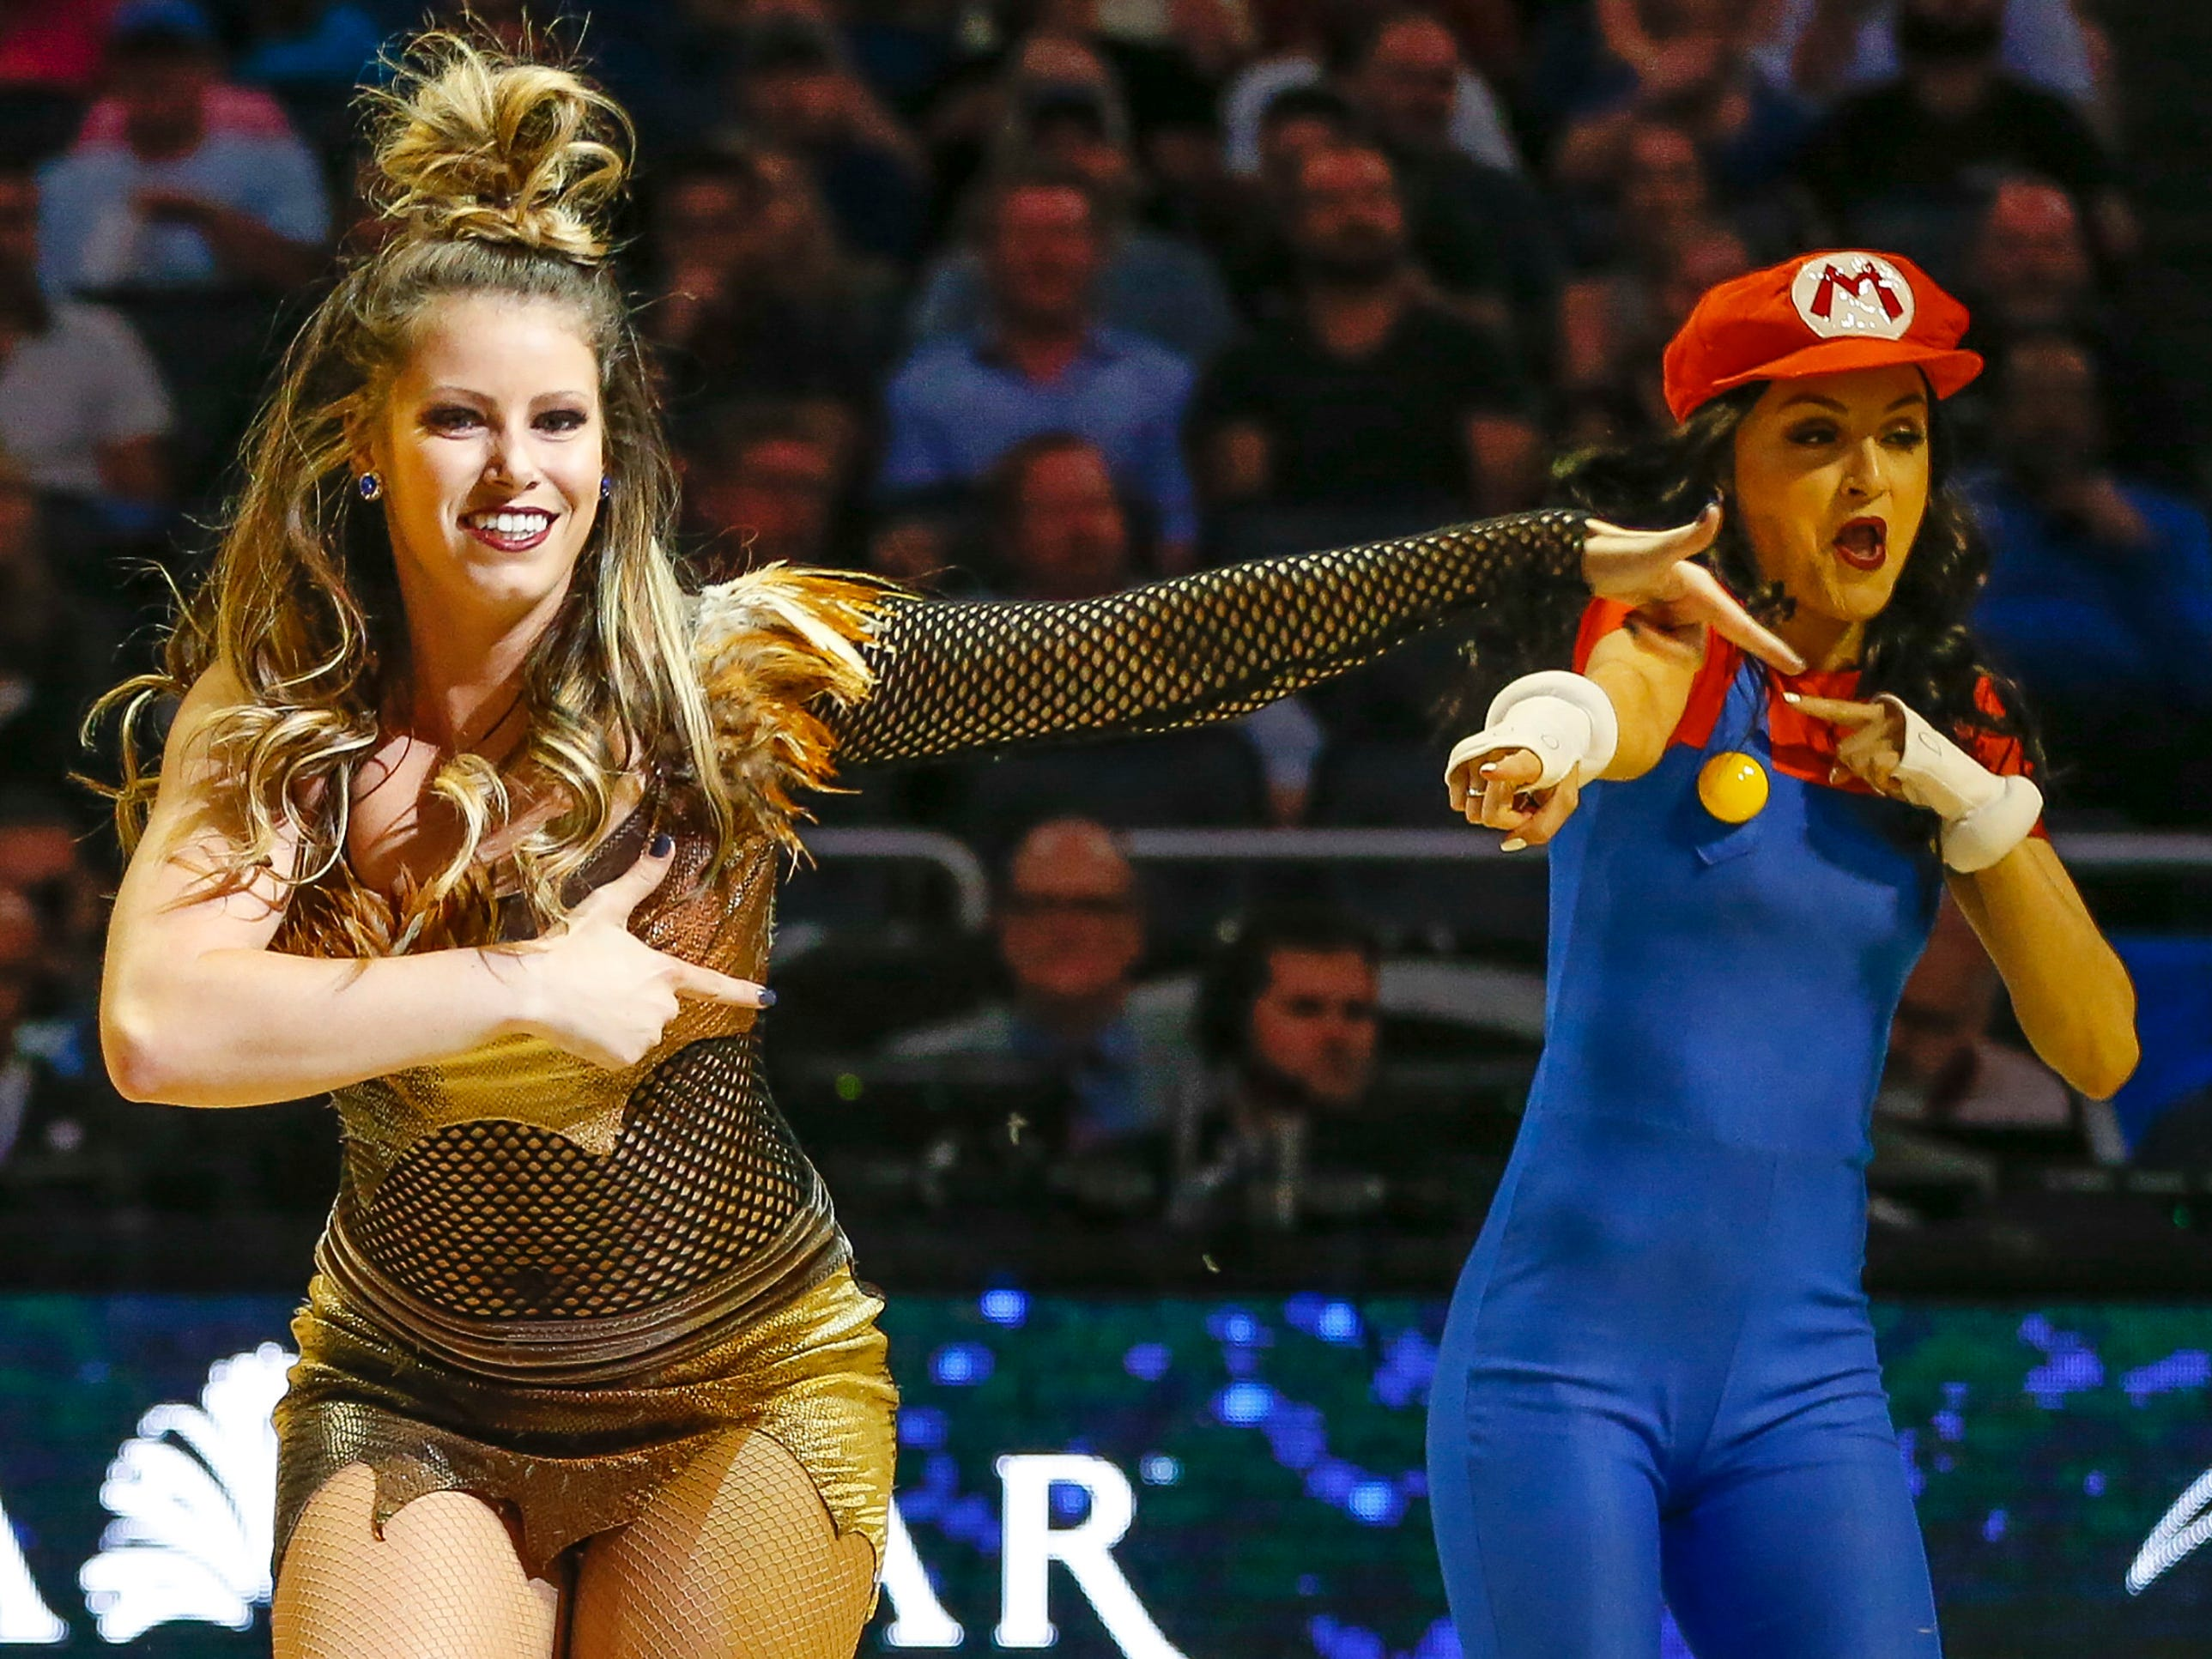 Oct. 30: Magic cheerleaders perform on the court during a stoppage in play in the first quarter of the game against the Sacramento Kings at Amway Center.